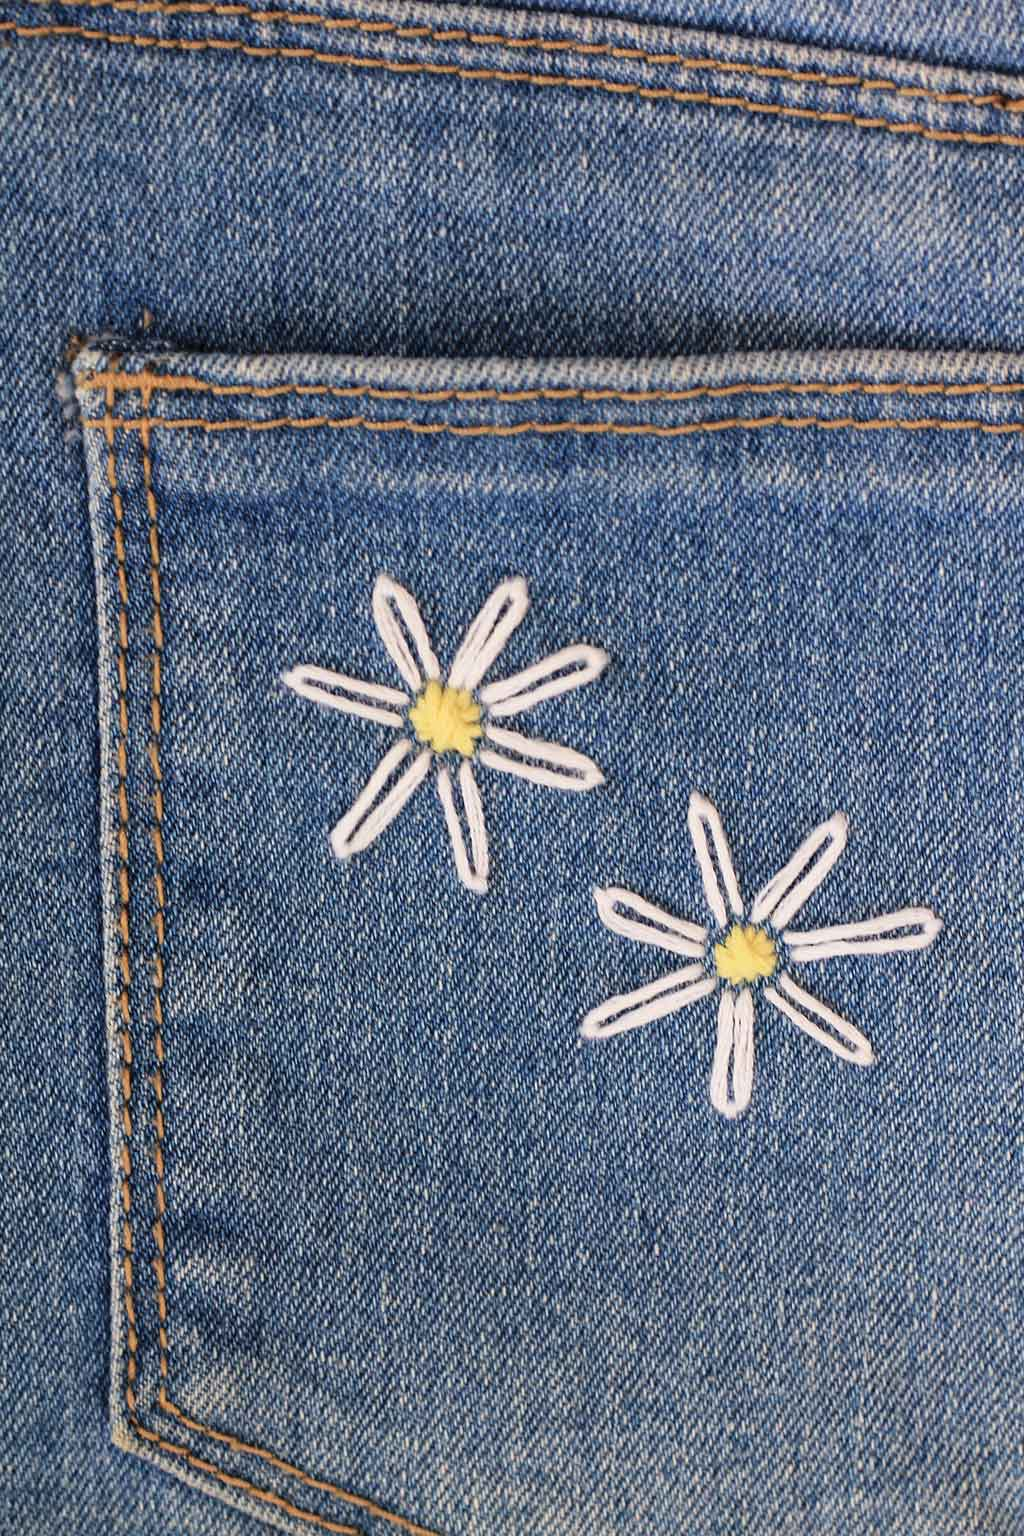 A simple daisy embroidery tutorial you can use on any fabric | Dossier Blog